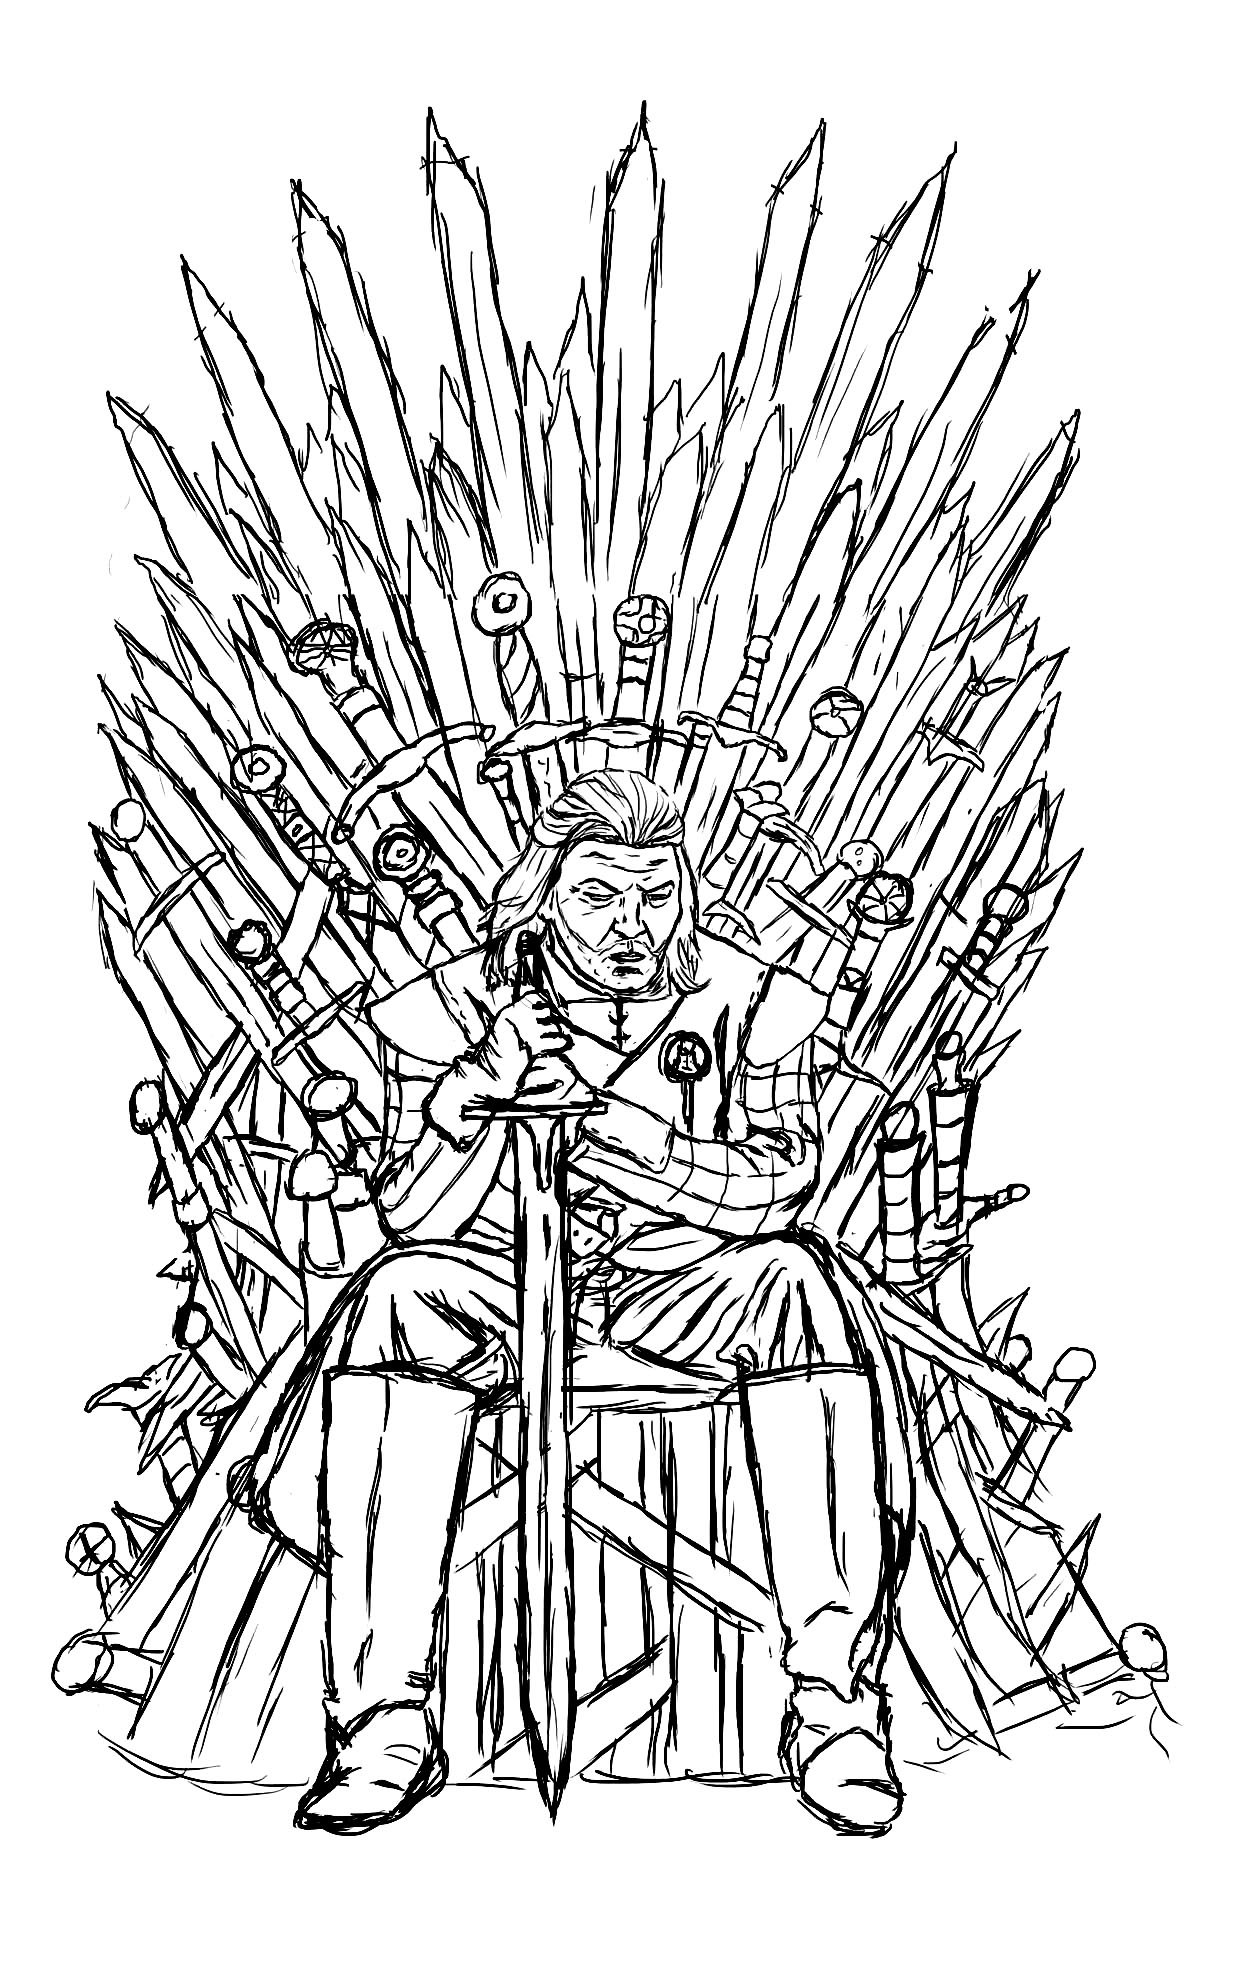 game of thrones coloring pages game of thrones coloring pages coloring pages to thrones game pages of coloring